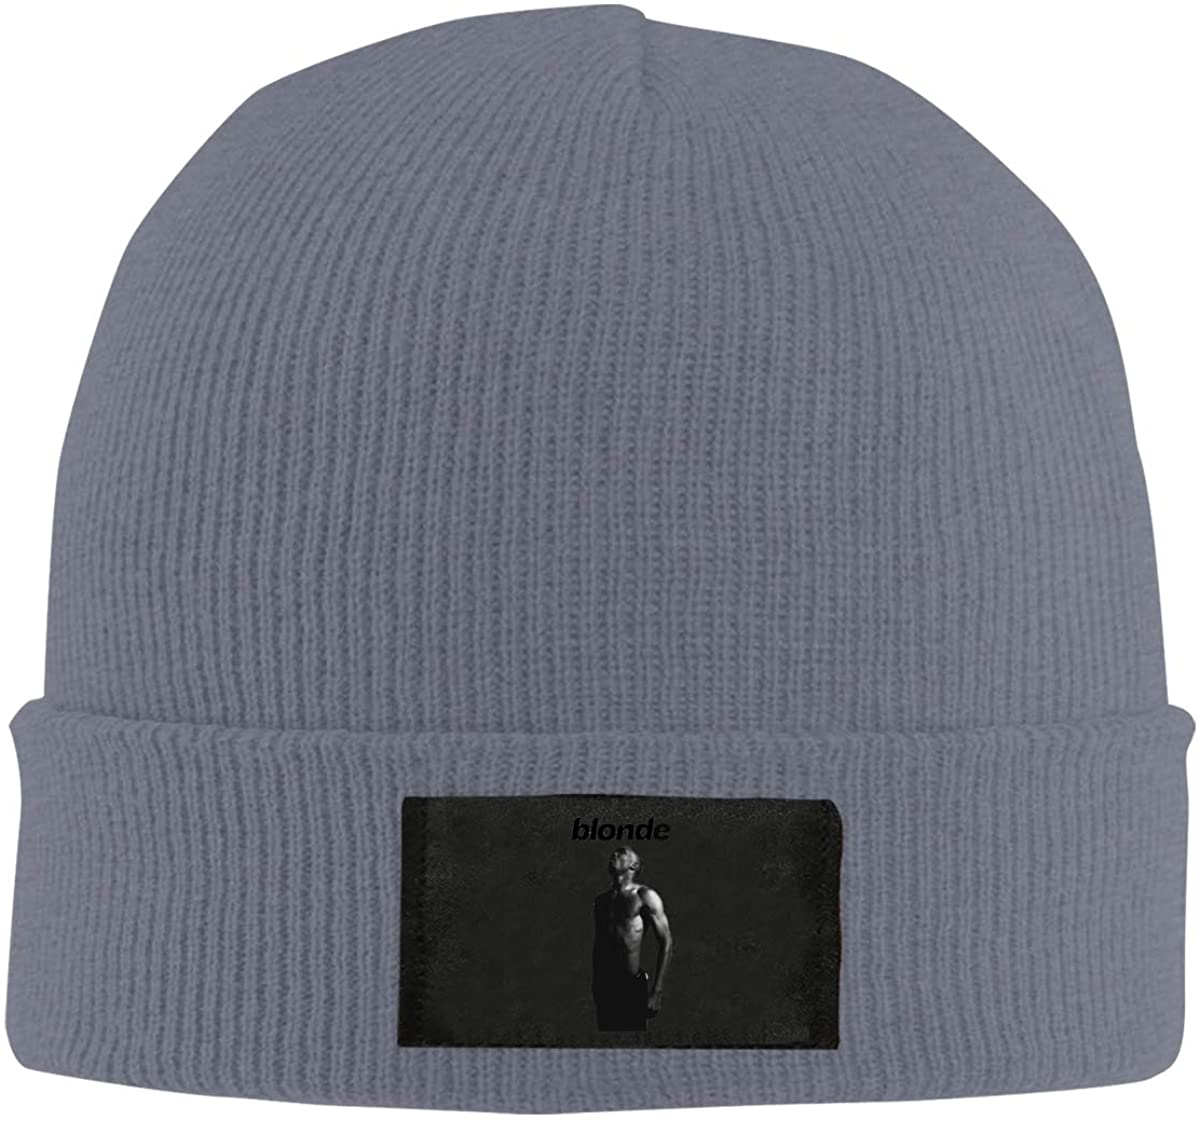 RhteGui Frank Ocean Blonde Knitted Pure Pigmented Casual Beanie Hat Hip Hop Knitting Hat Black